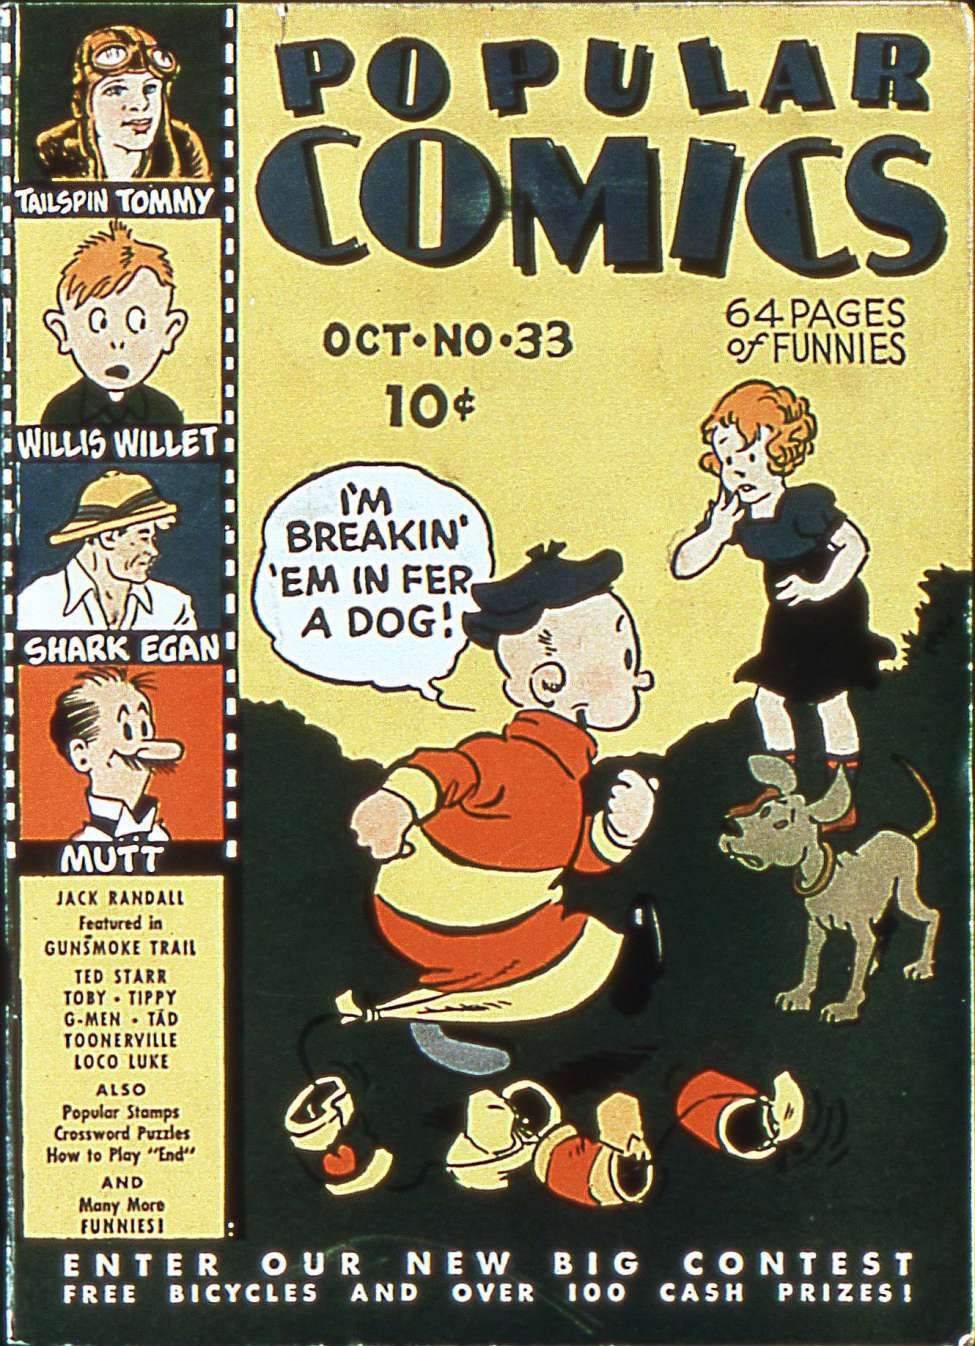 Comic Book Cover For Popular Comics #33